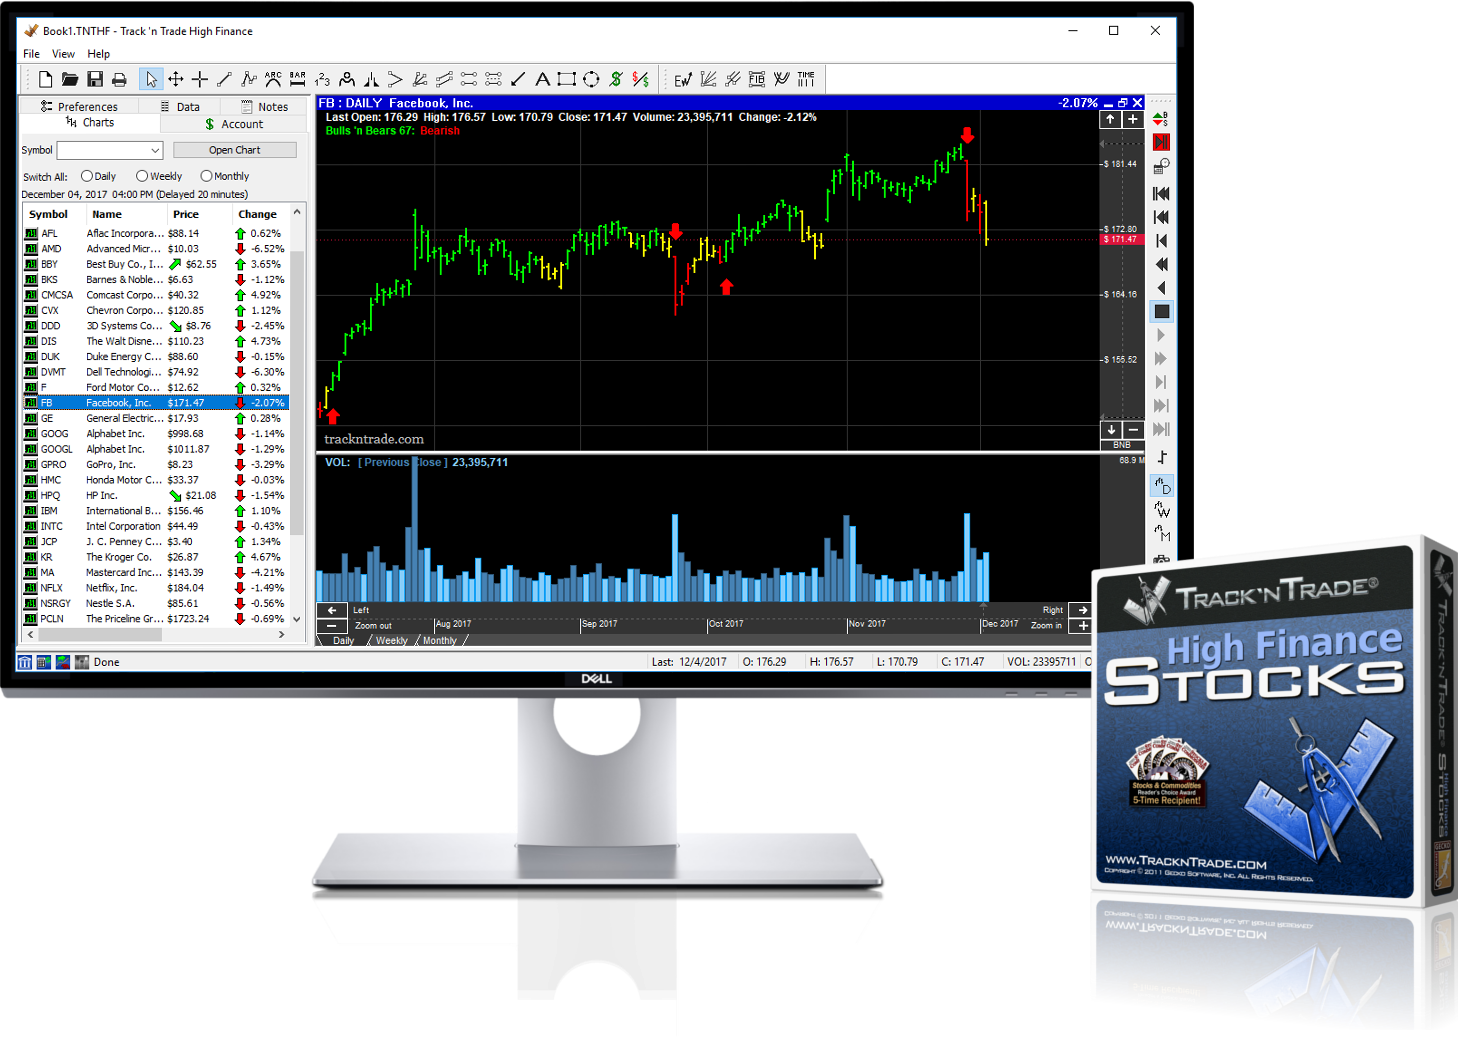 Track n trade live forex full download